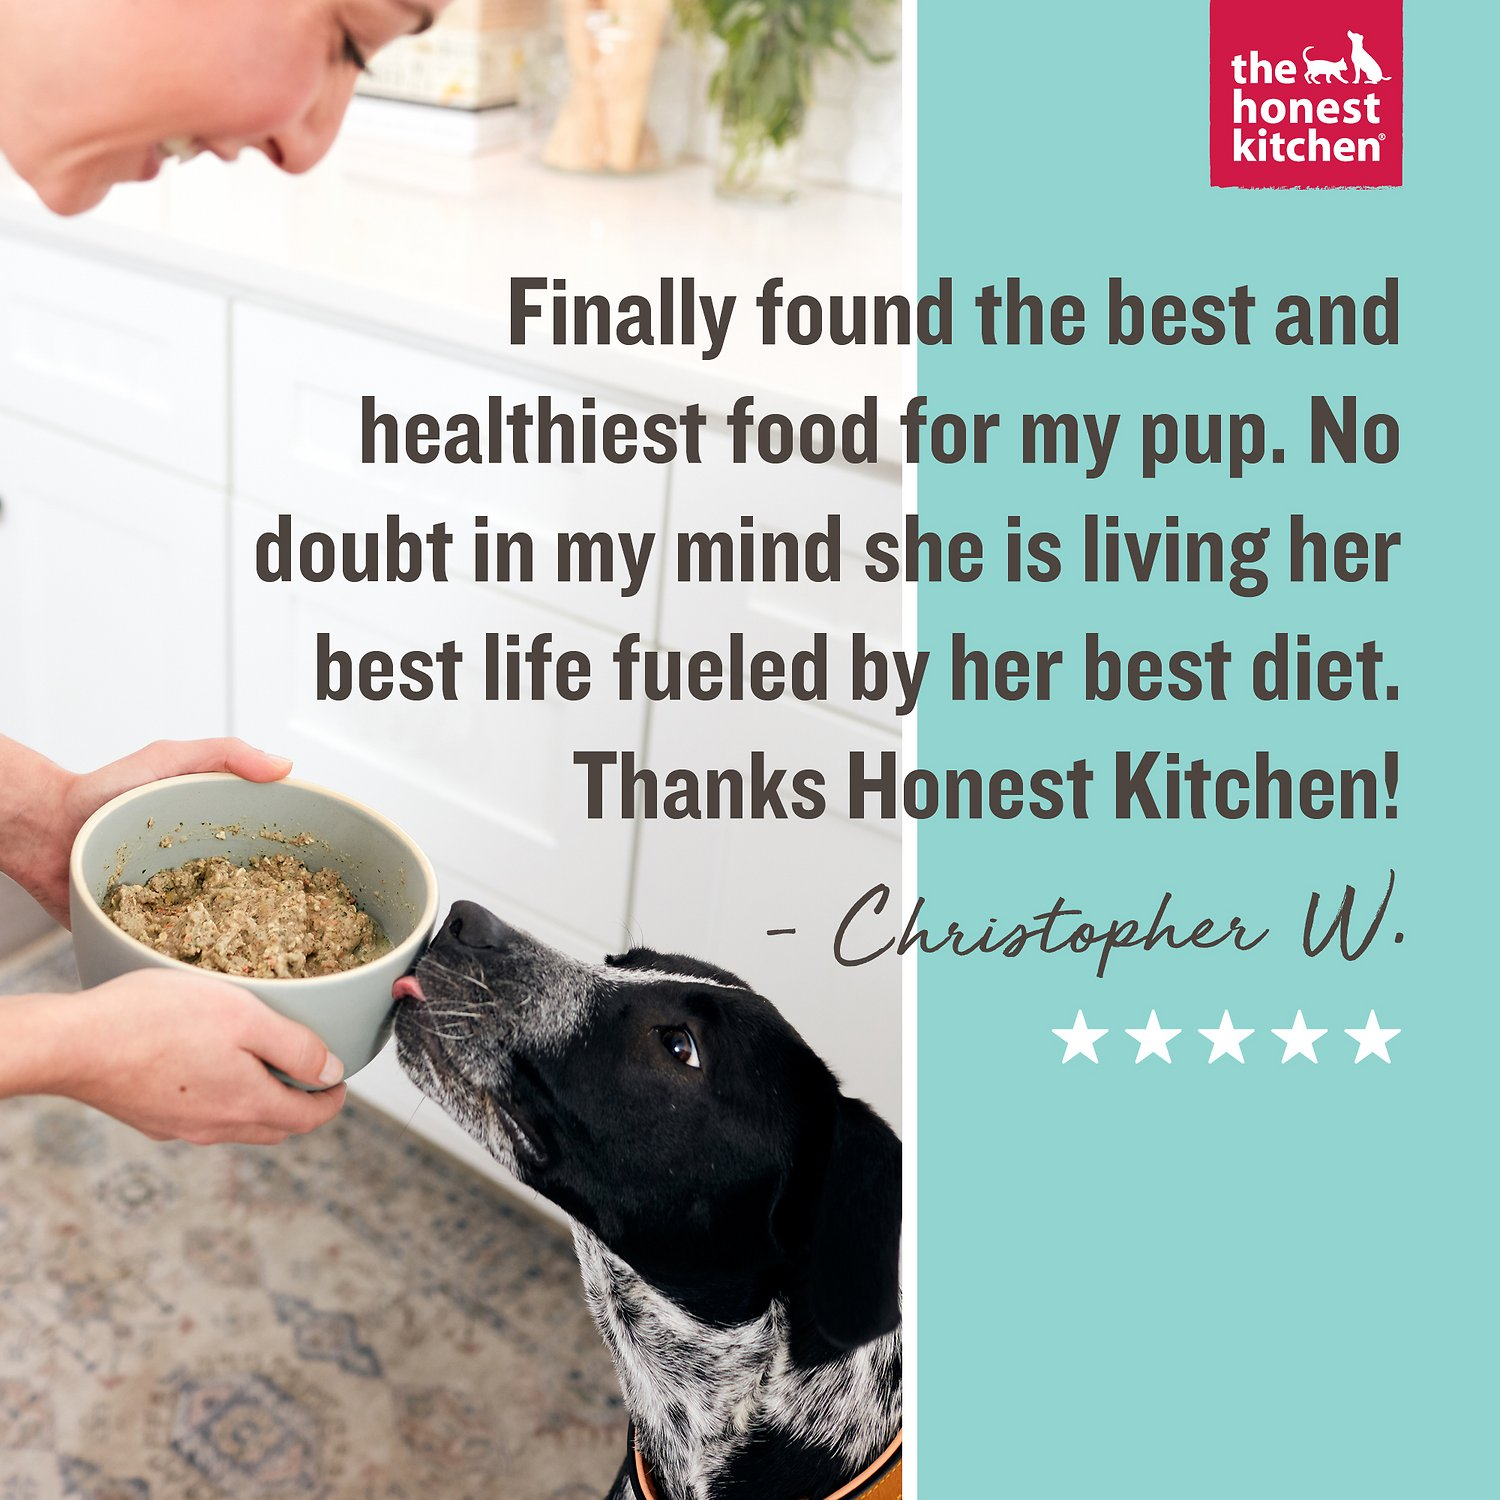 The honest kitchen grain free turkey recipe dehydrated dog food video nvjuhfo Images